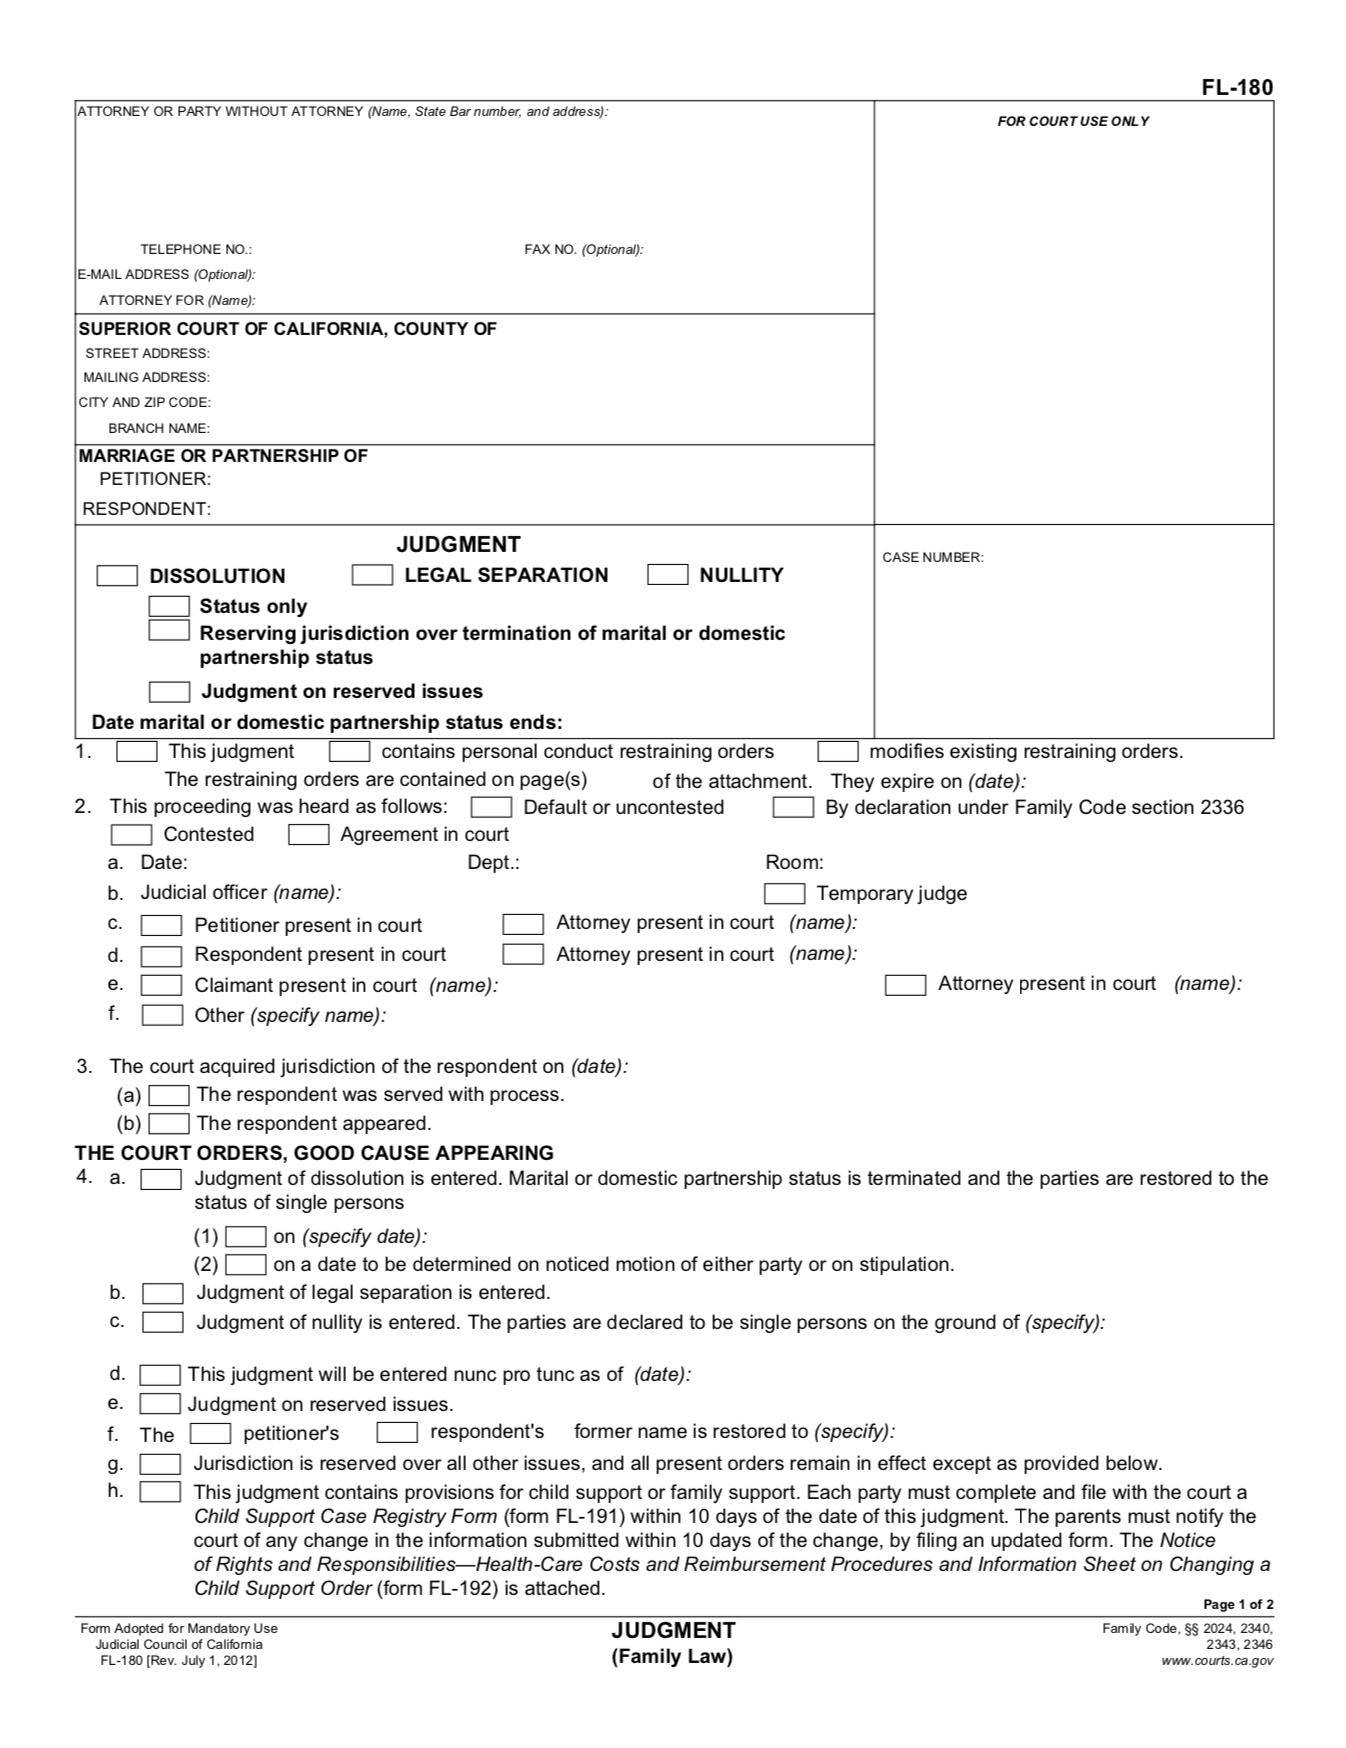 FL-180 judgment form